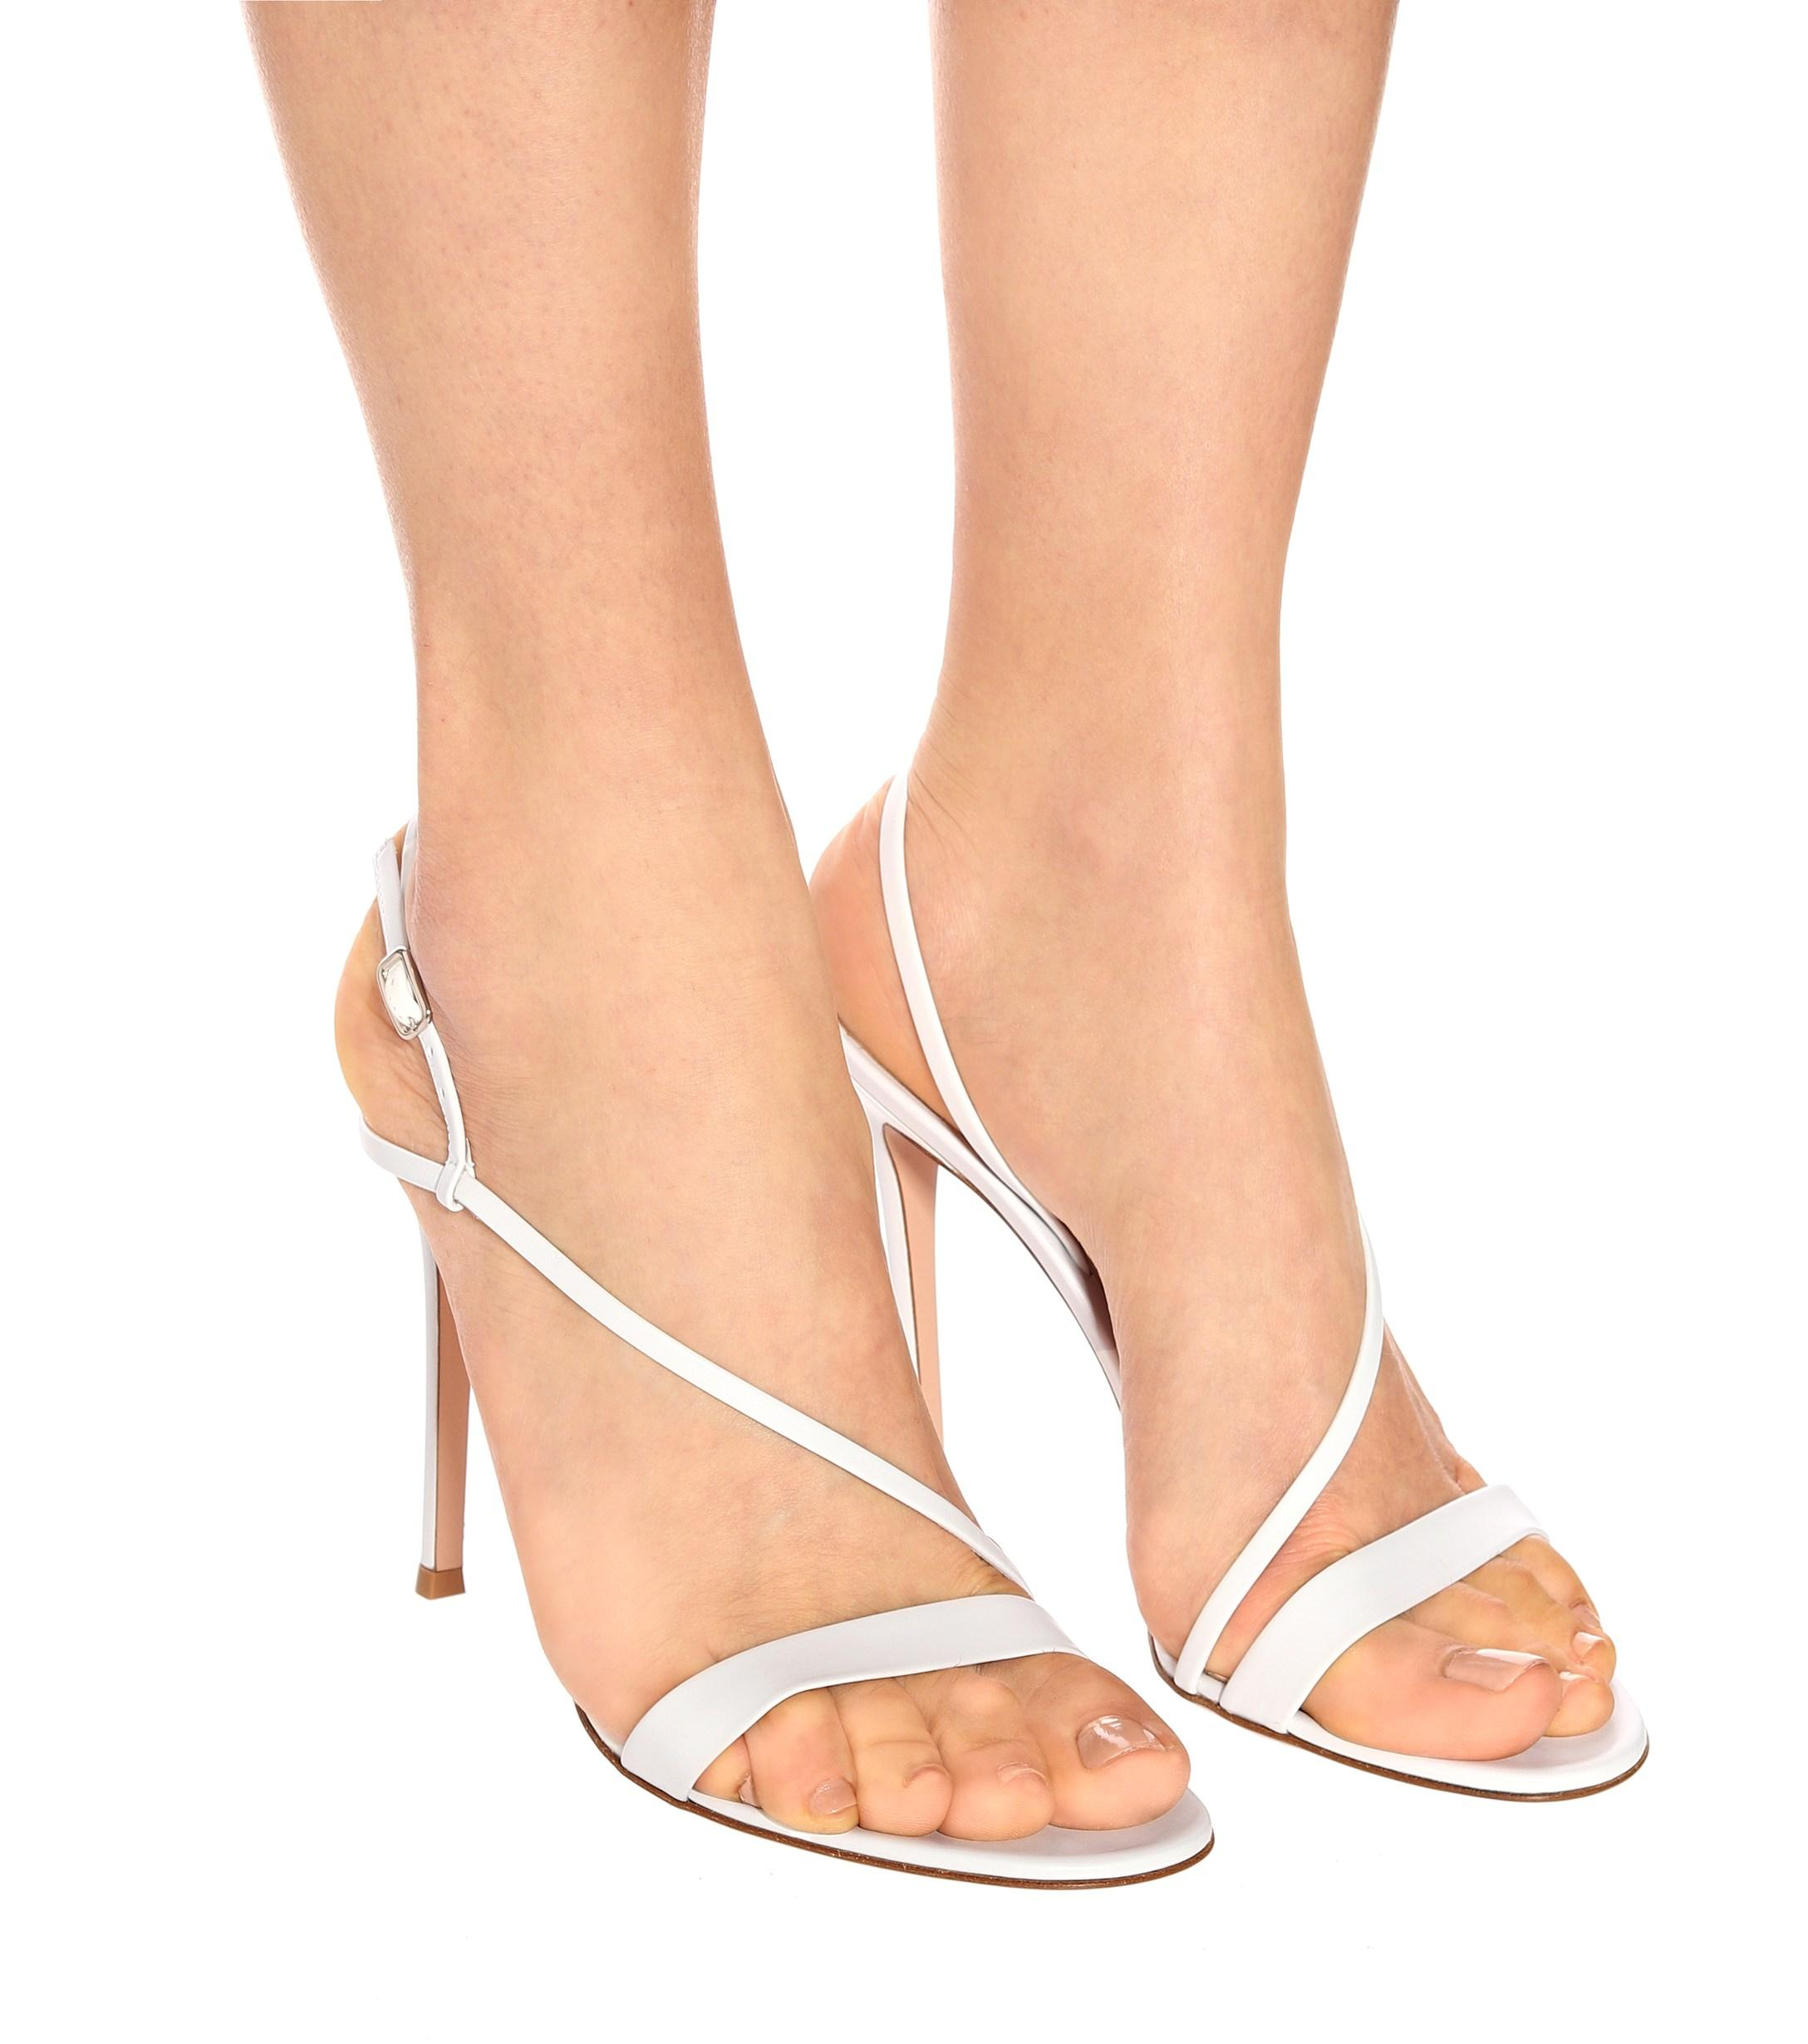 33ab7277f3a Lyst - Gianvito Rossi Manhattan Leather Sandals in White